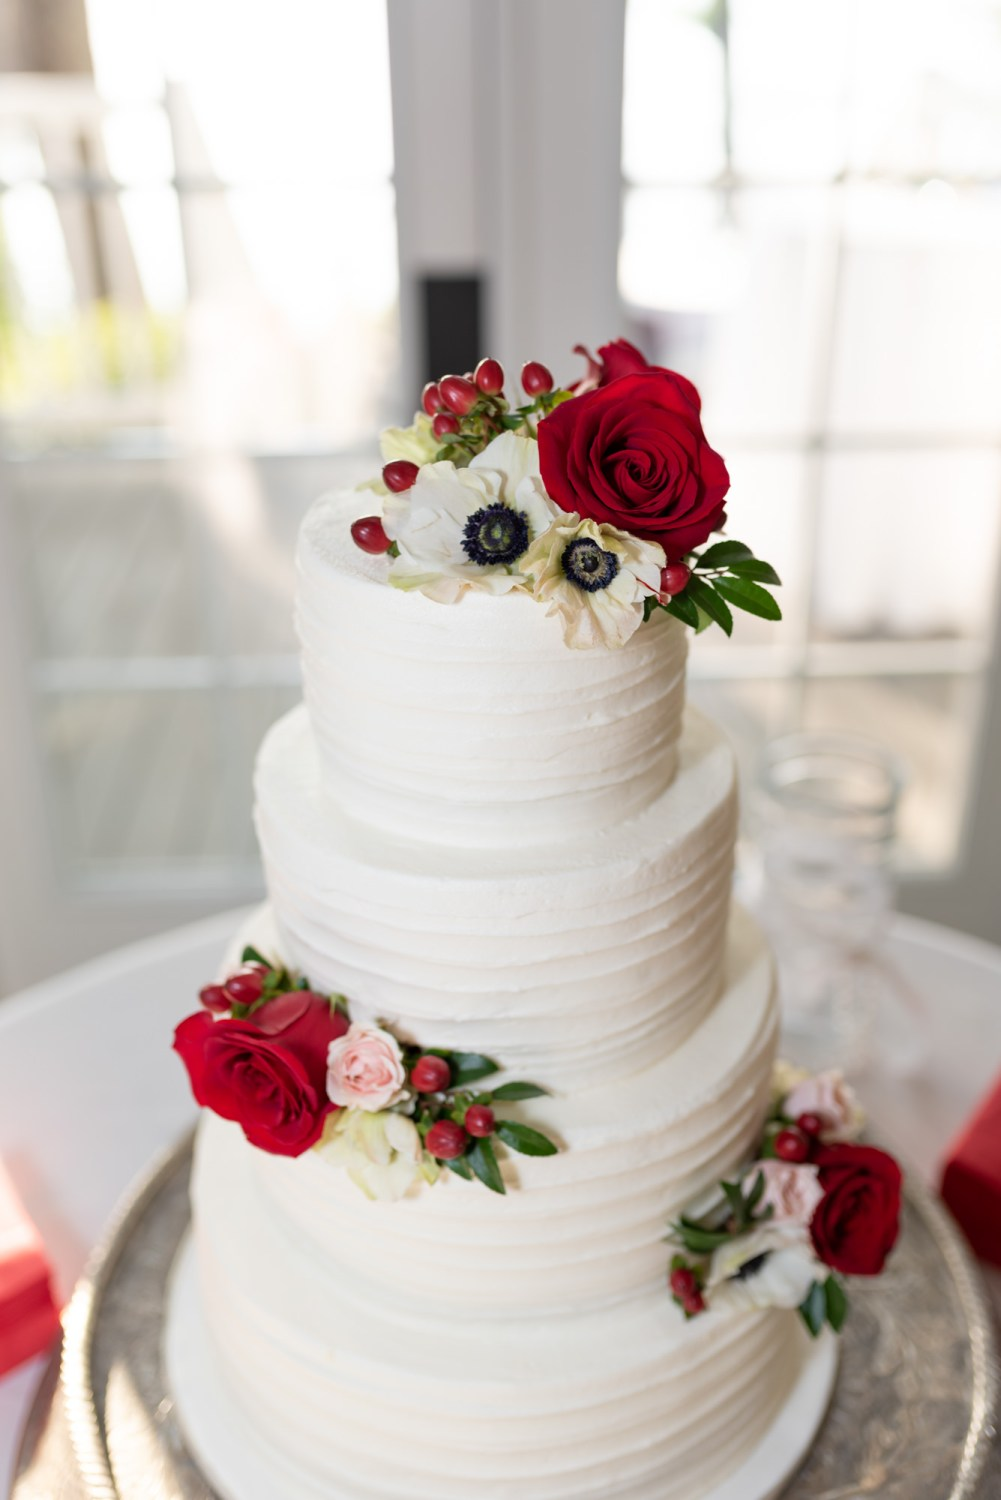 Pictures of the wedding cake - Wachesaw Plantation